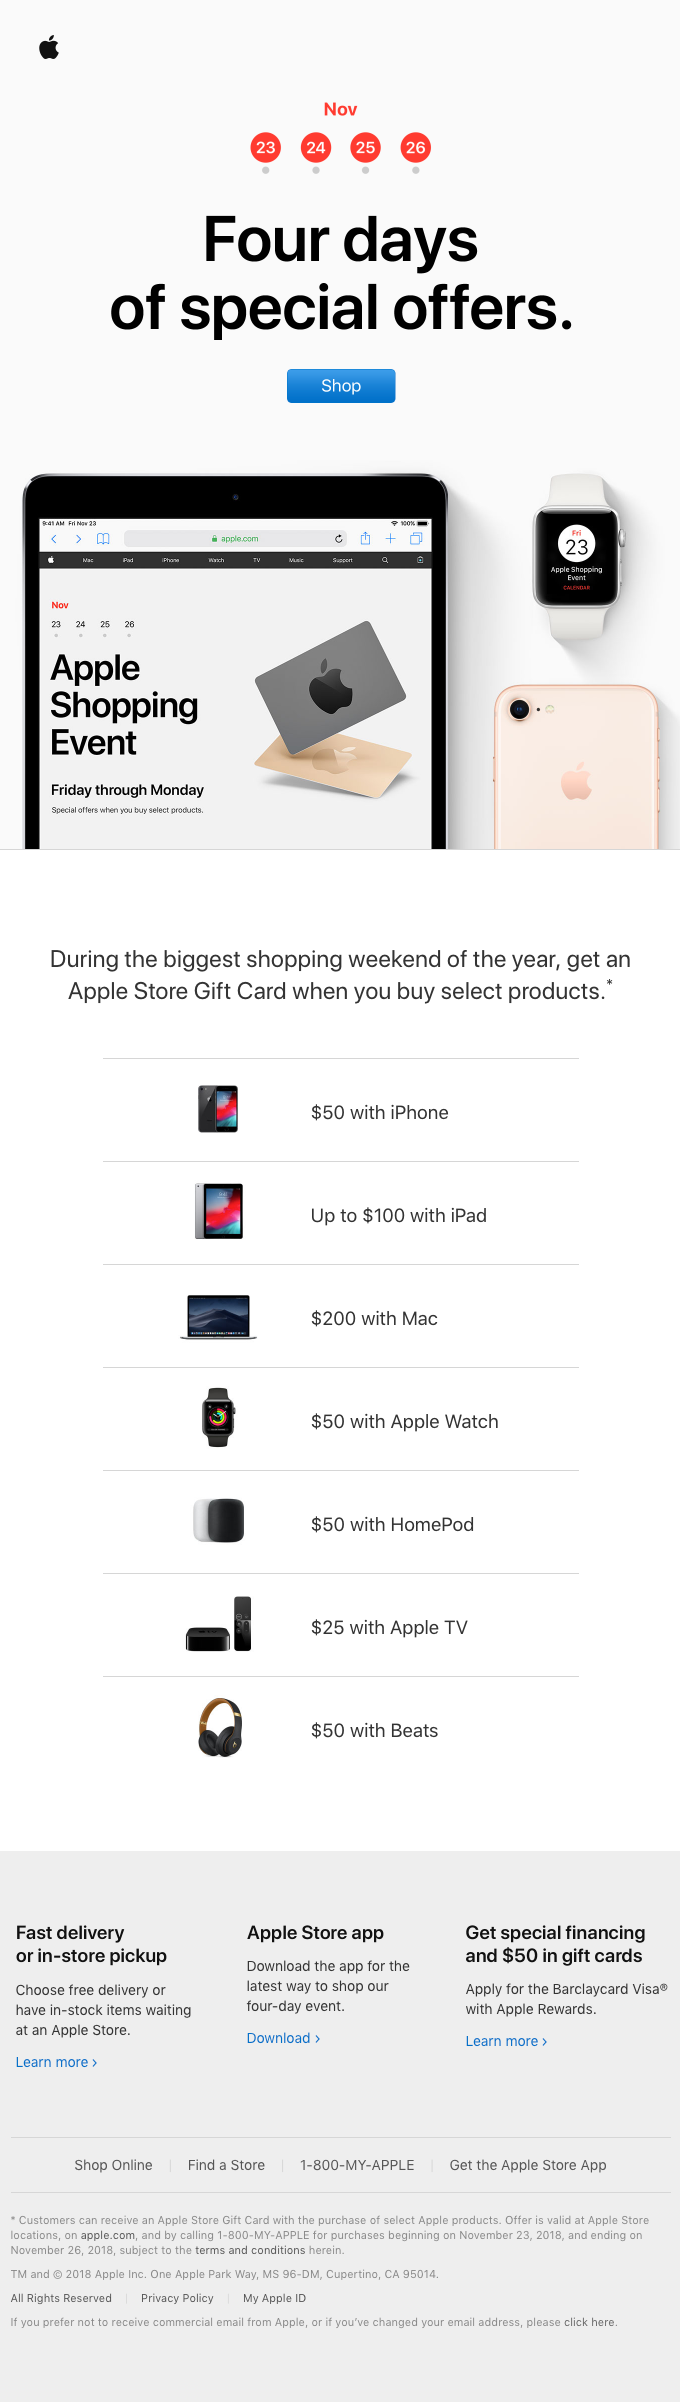 The Apple Shopping Event. Now through Monday